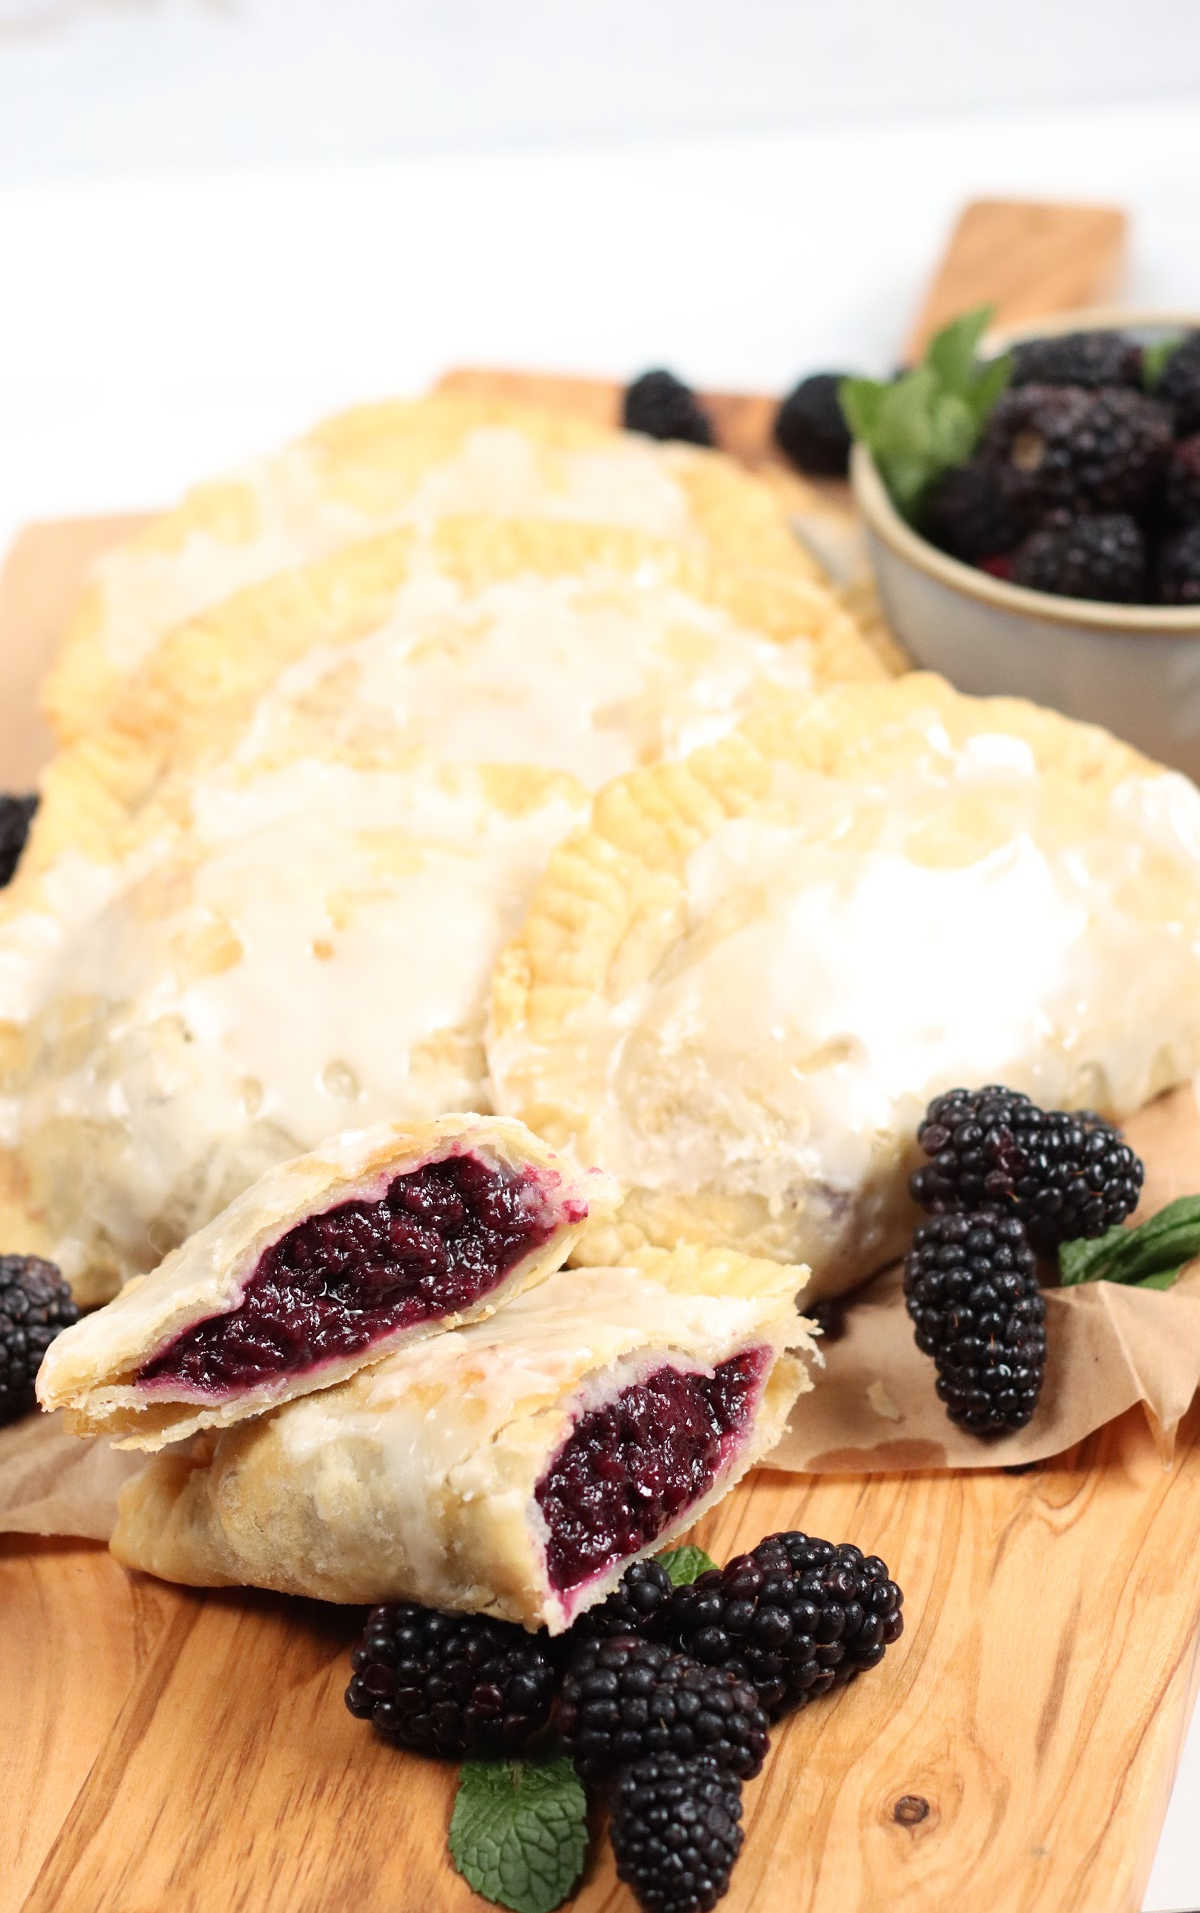 Close up of blackberry hand pie cut in half, other pies in background, loose blackberries.